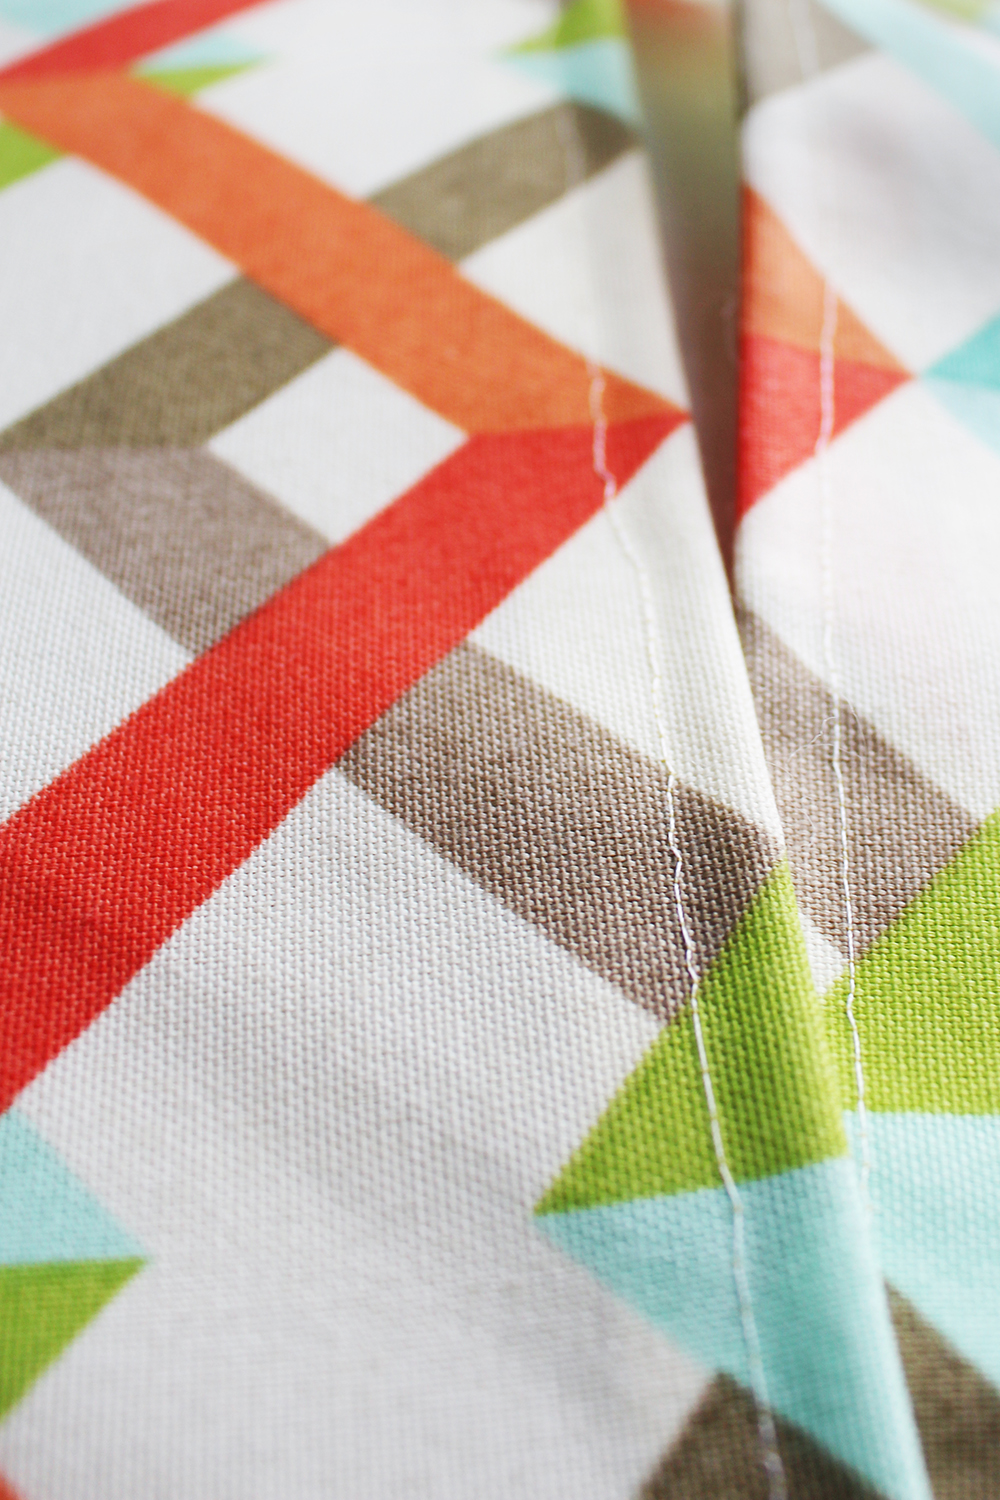 Designerly: A New Hobby, Sewing